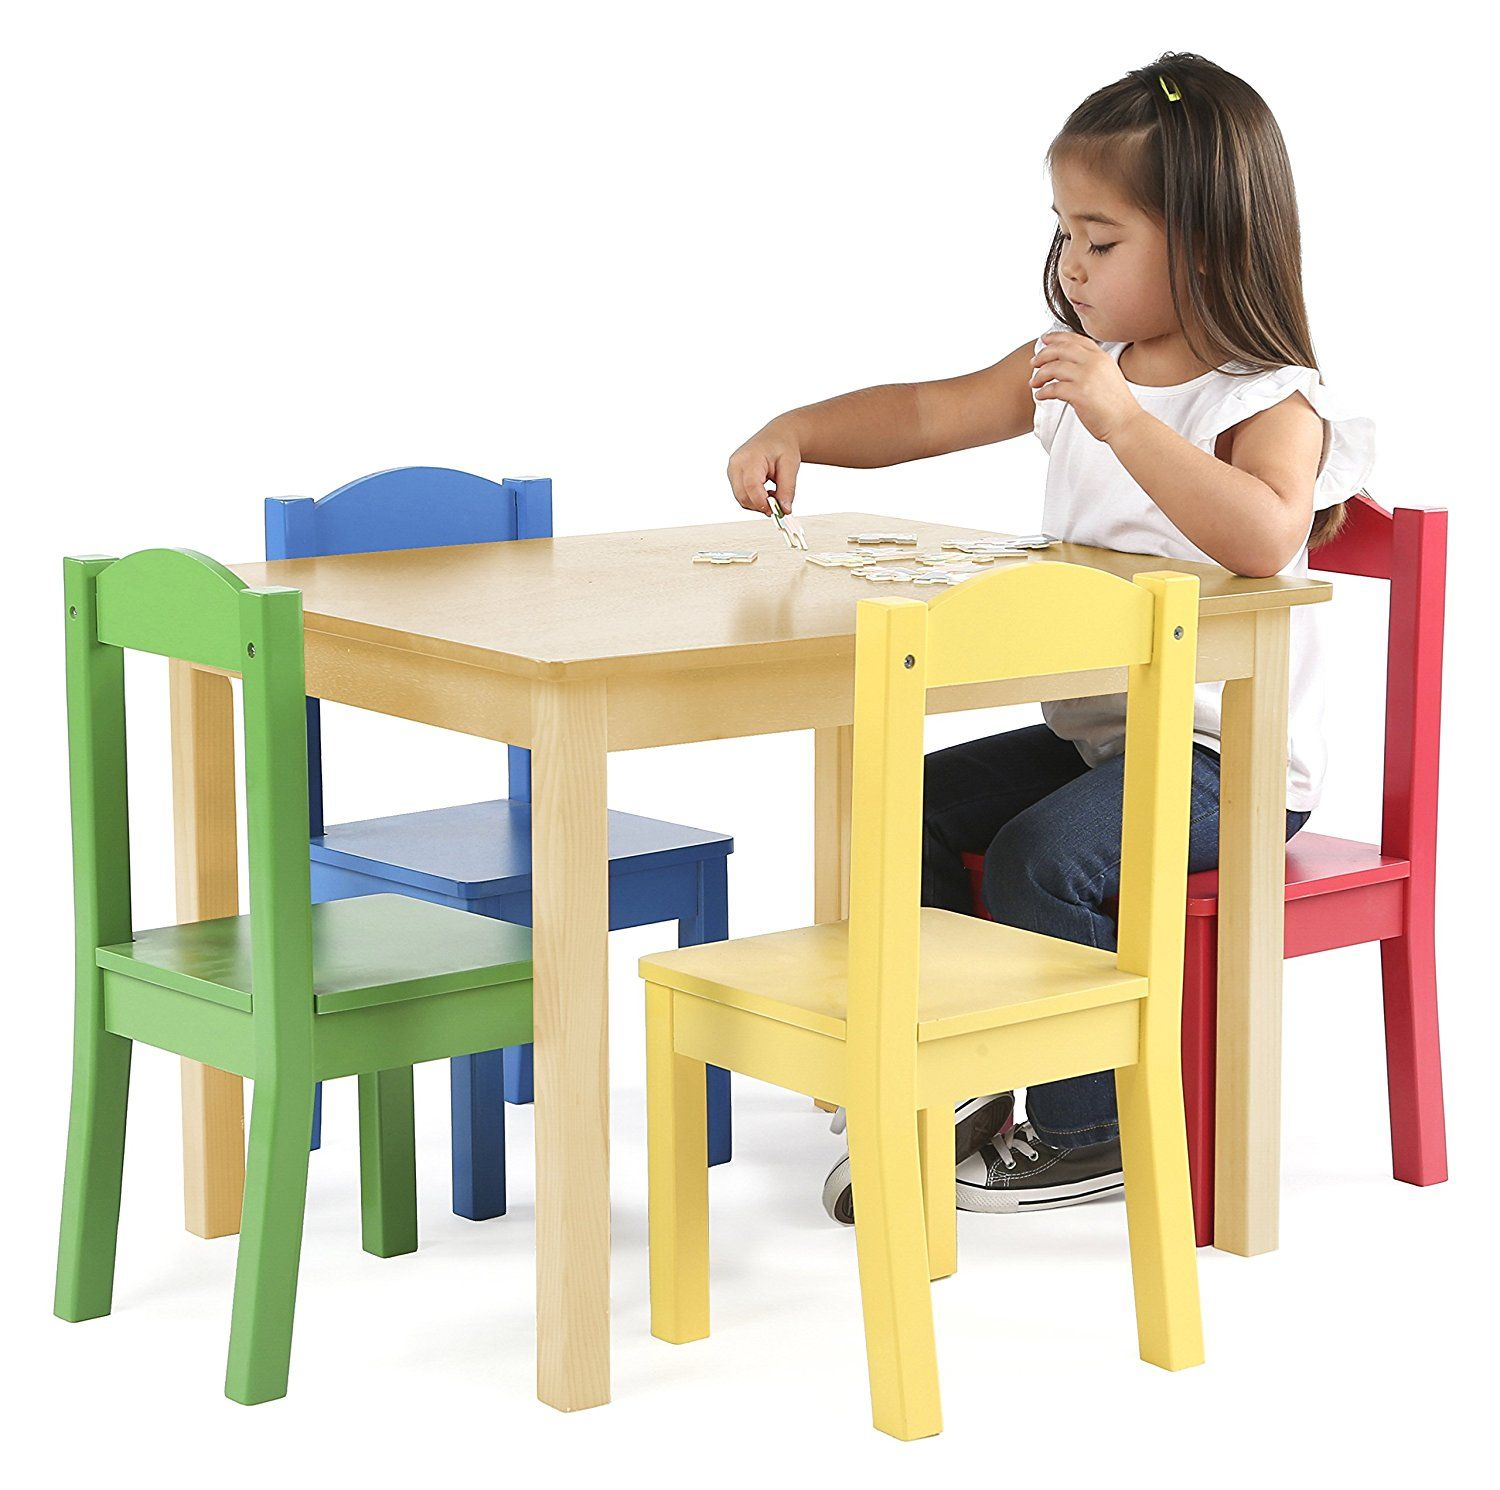 Amazon.com Tot Tutors Kids Wood Table and 4 Chairs Set Kitchen u0026 Dining #furniture #kids #table #chairs #set #colors #kidsroom #kitchen #dinnertime #small ...  sc 1 st  Pinterest & Amazon.com: Tot Tutors Kids Wood Table and 4 Chairs Set Kitchen ...